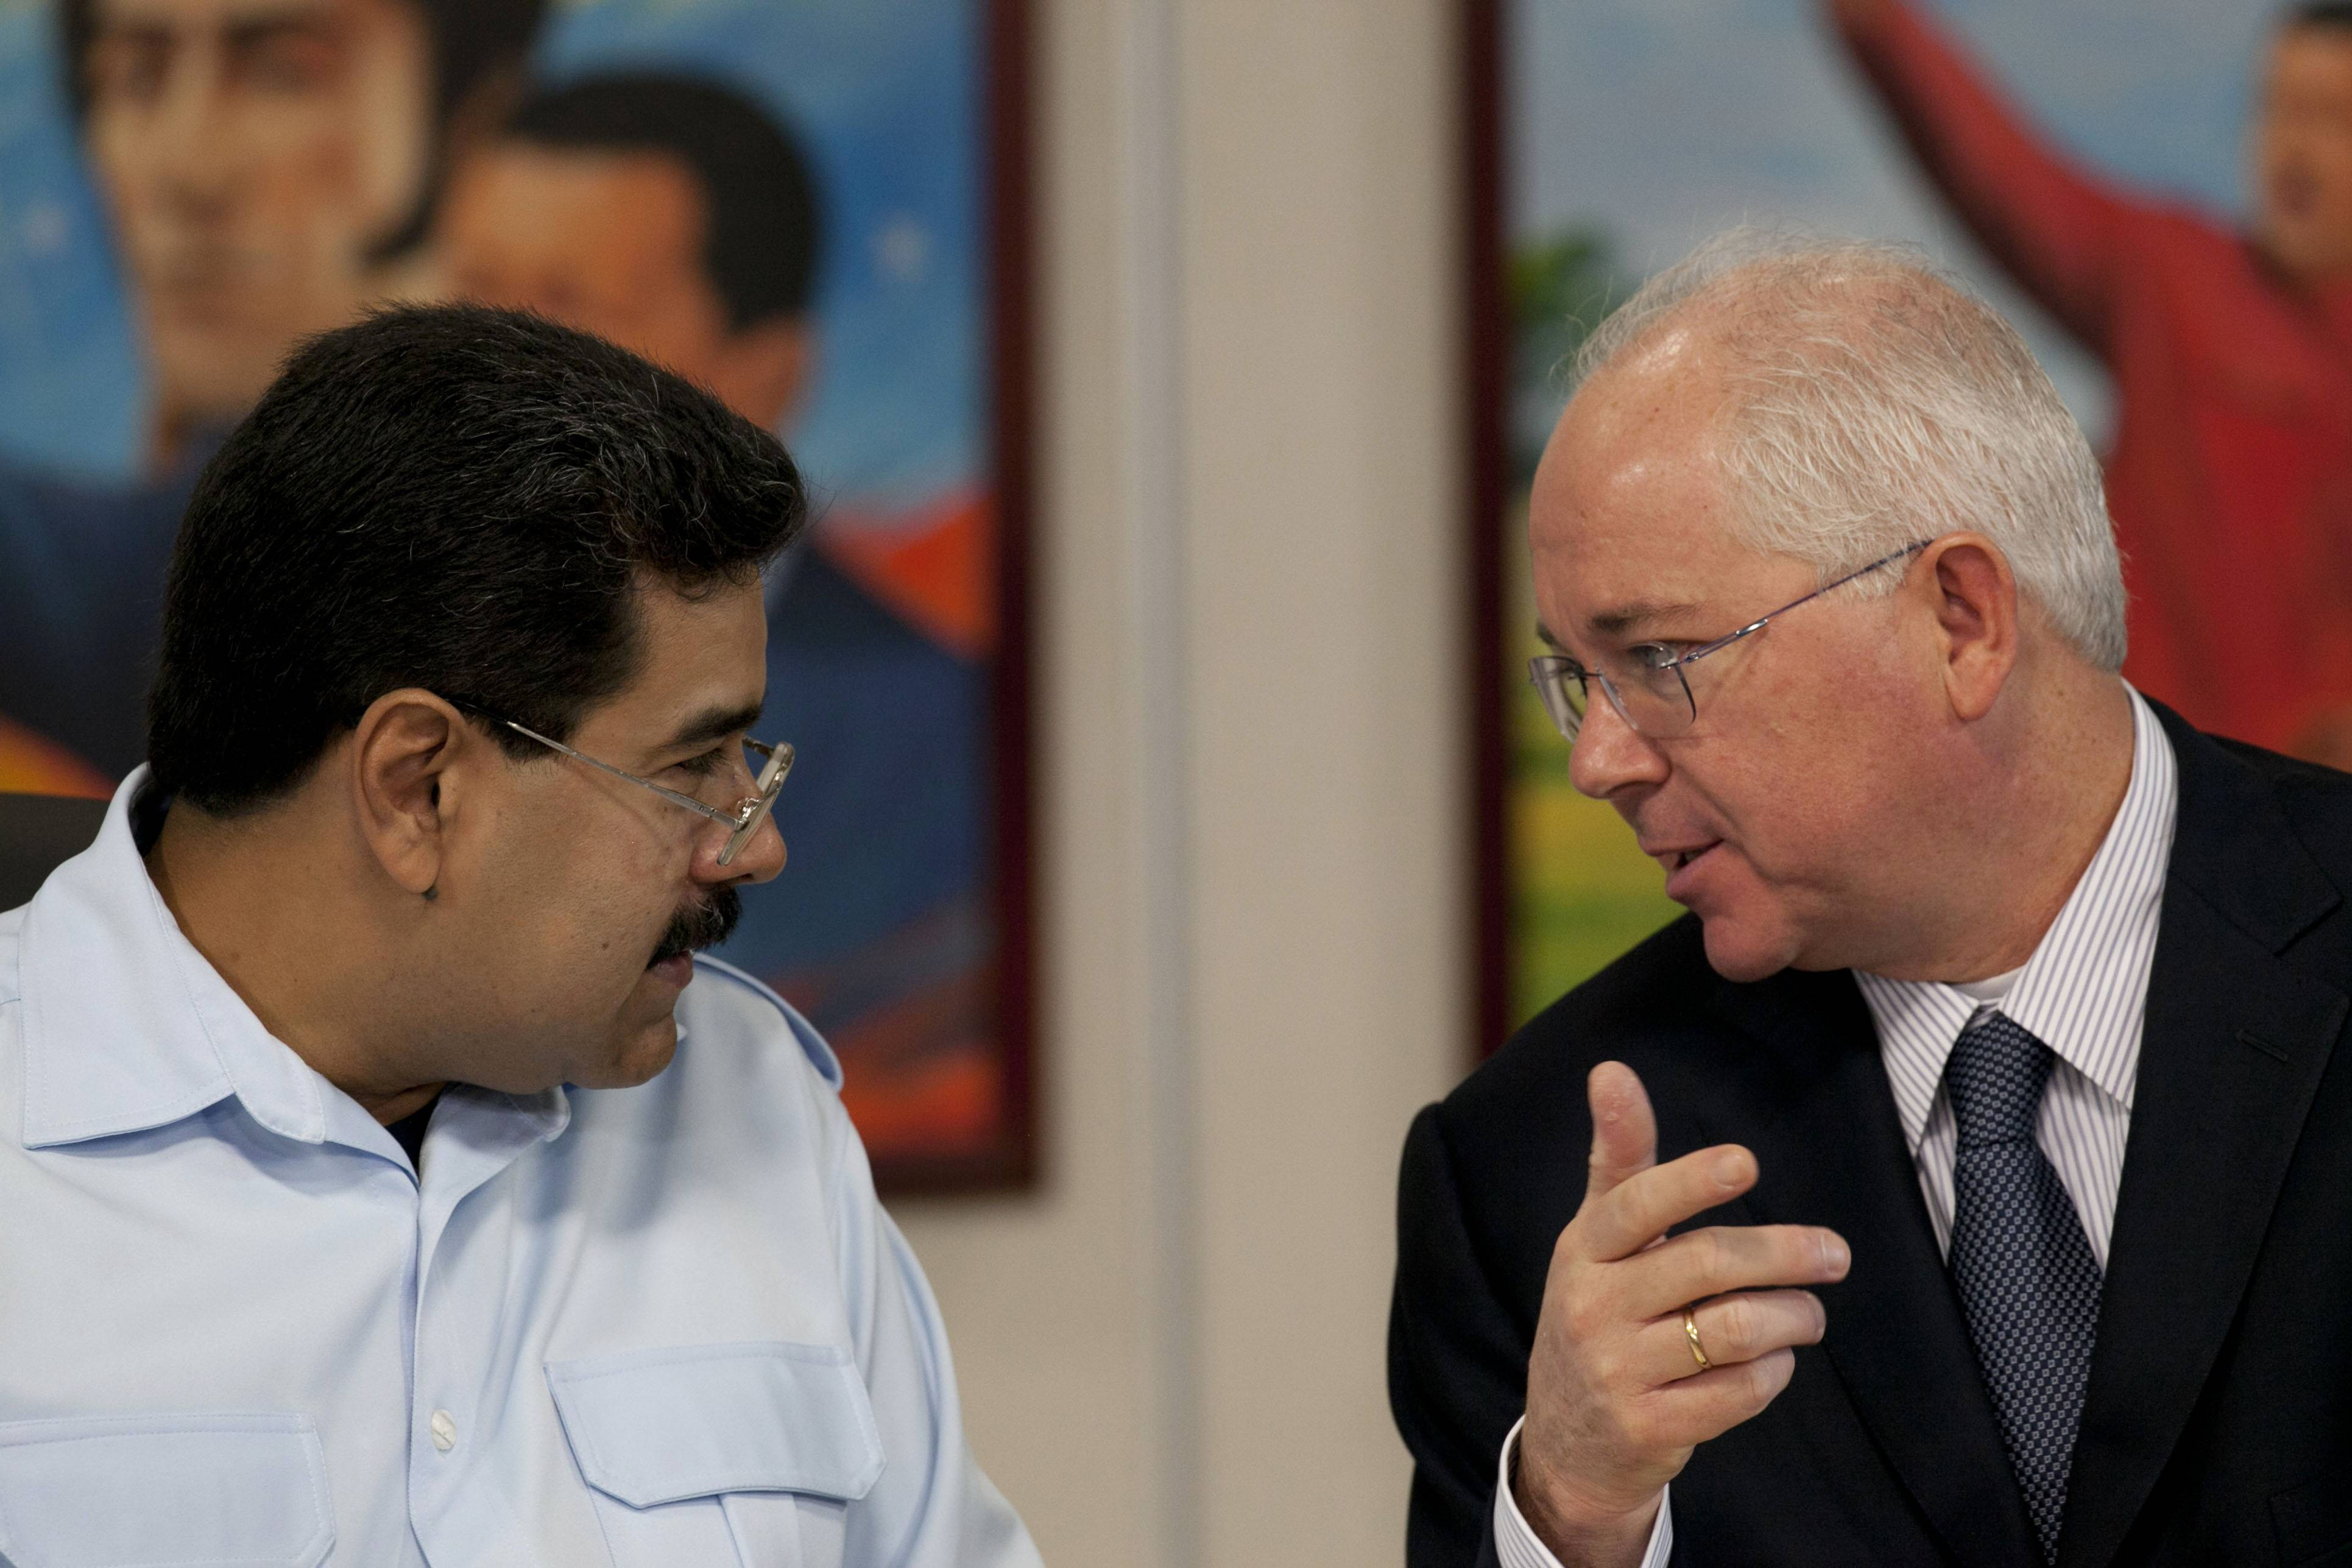 Venezuela President Nicholas Maduro (left) has replaced Oil Minister Rafael Ramirez.